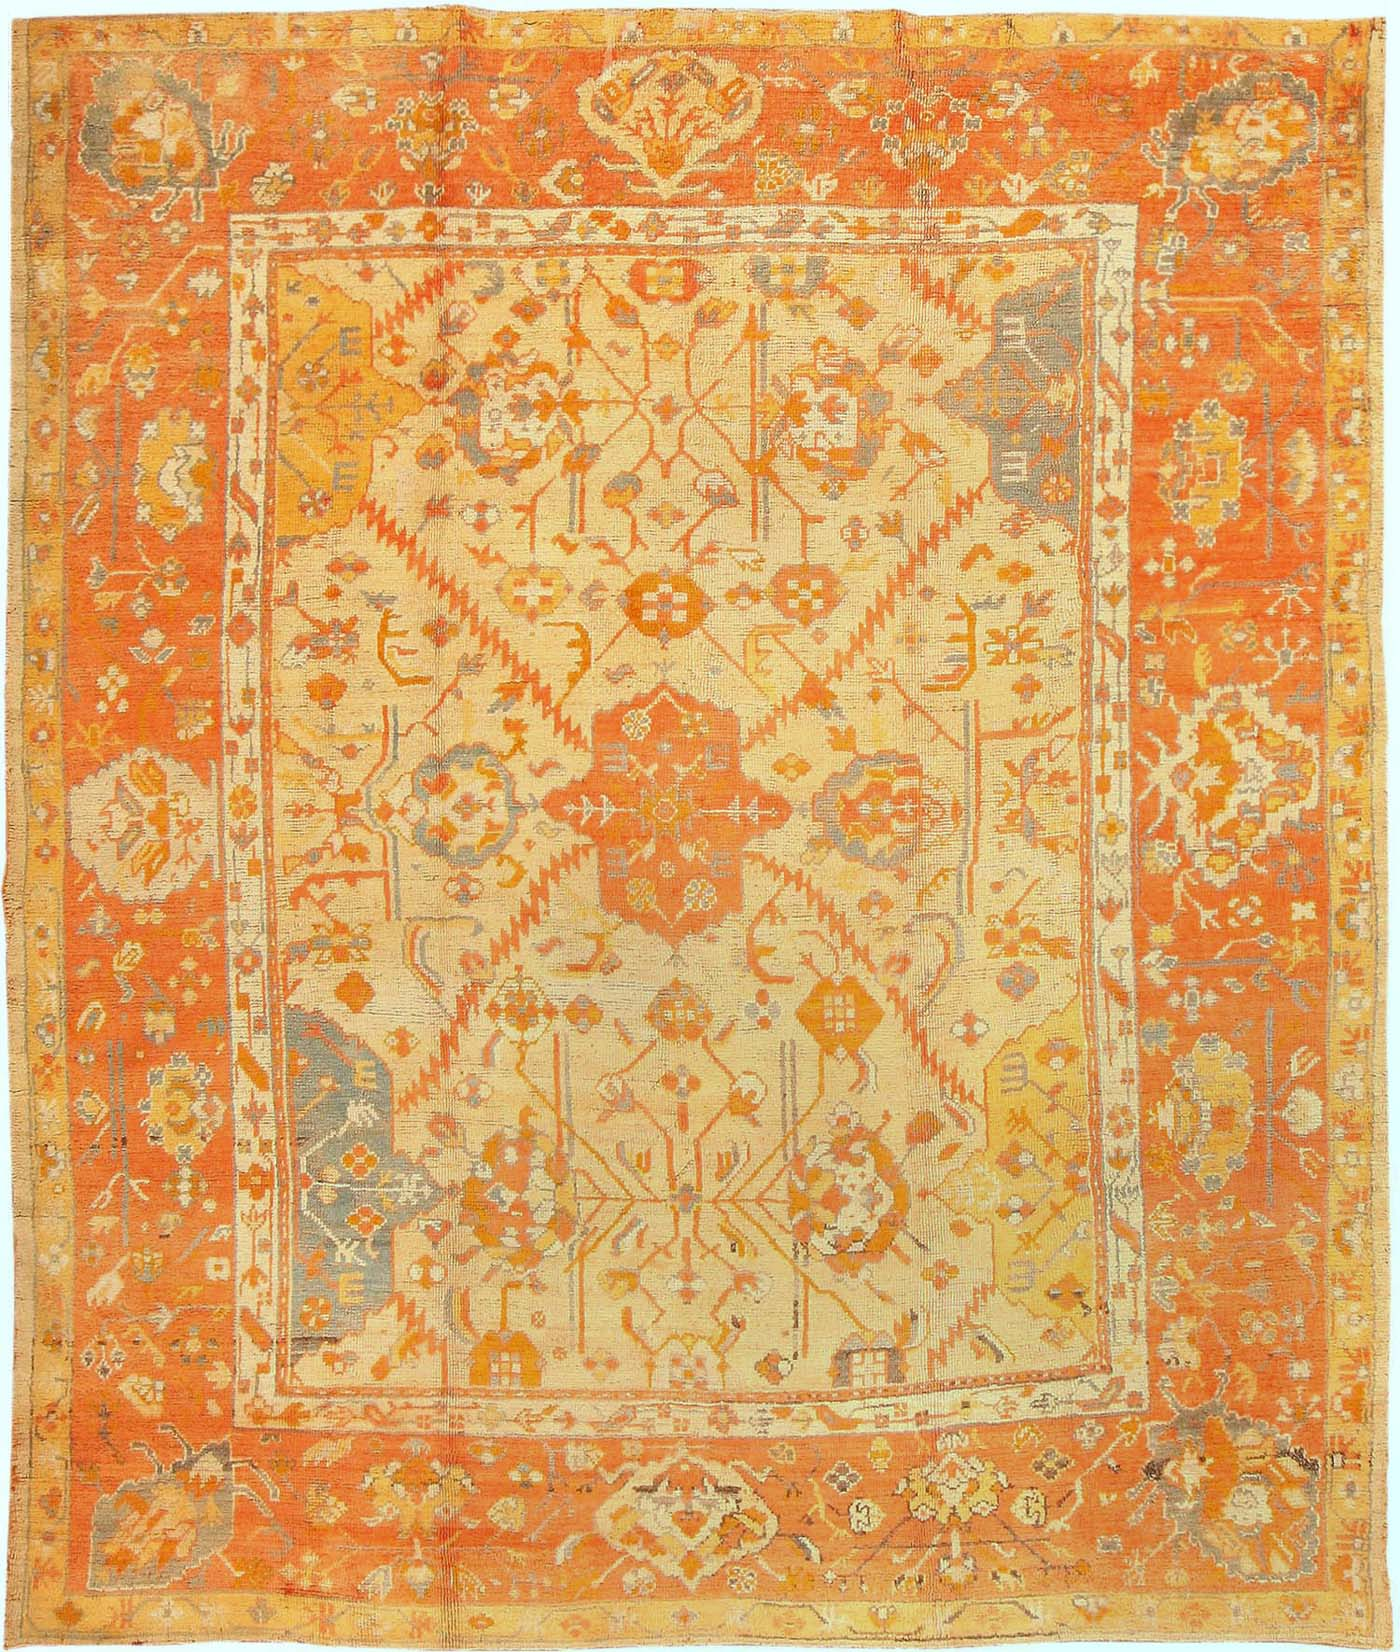 Antique Oushak Turkish Rug 3040 For Sale Antiques Com